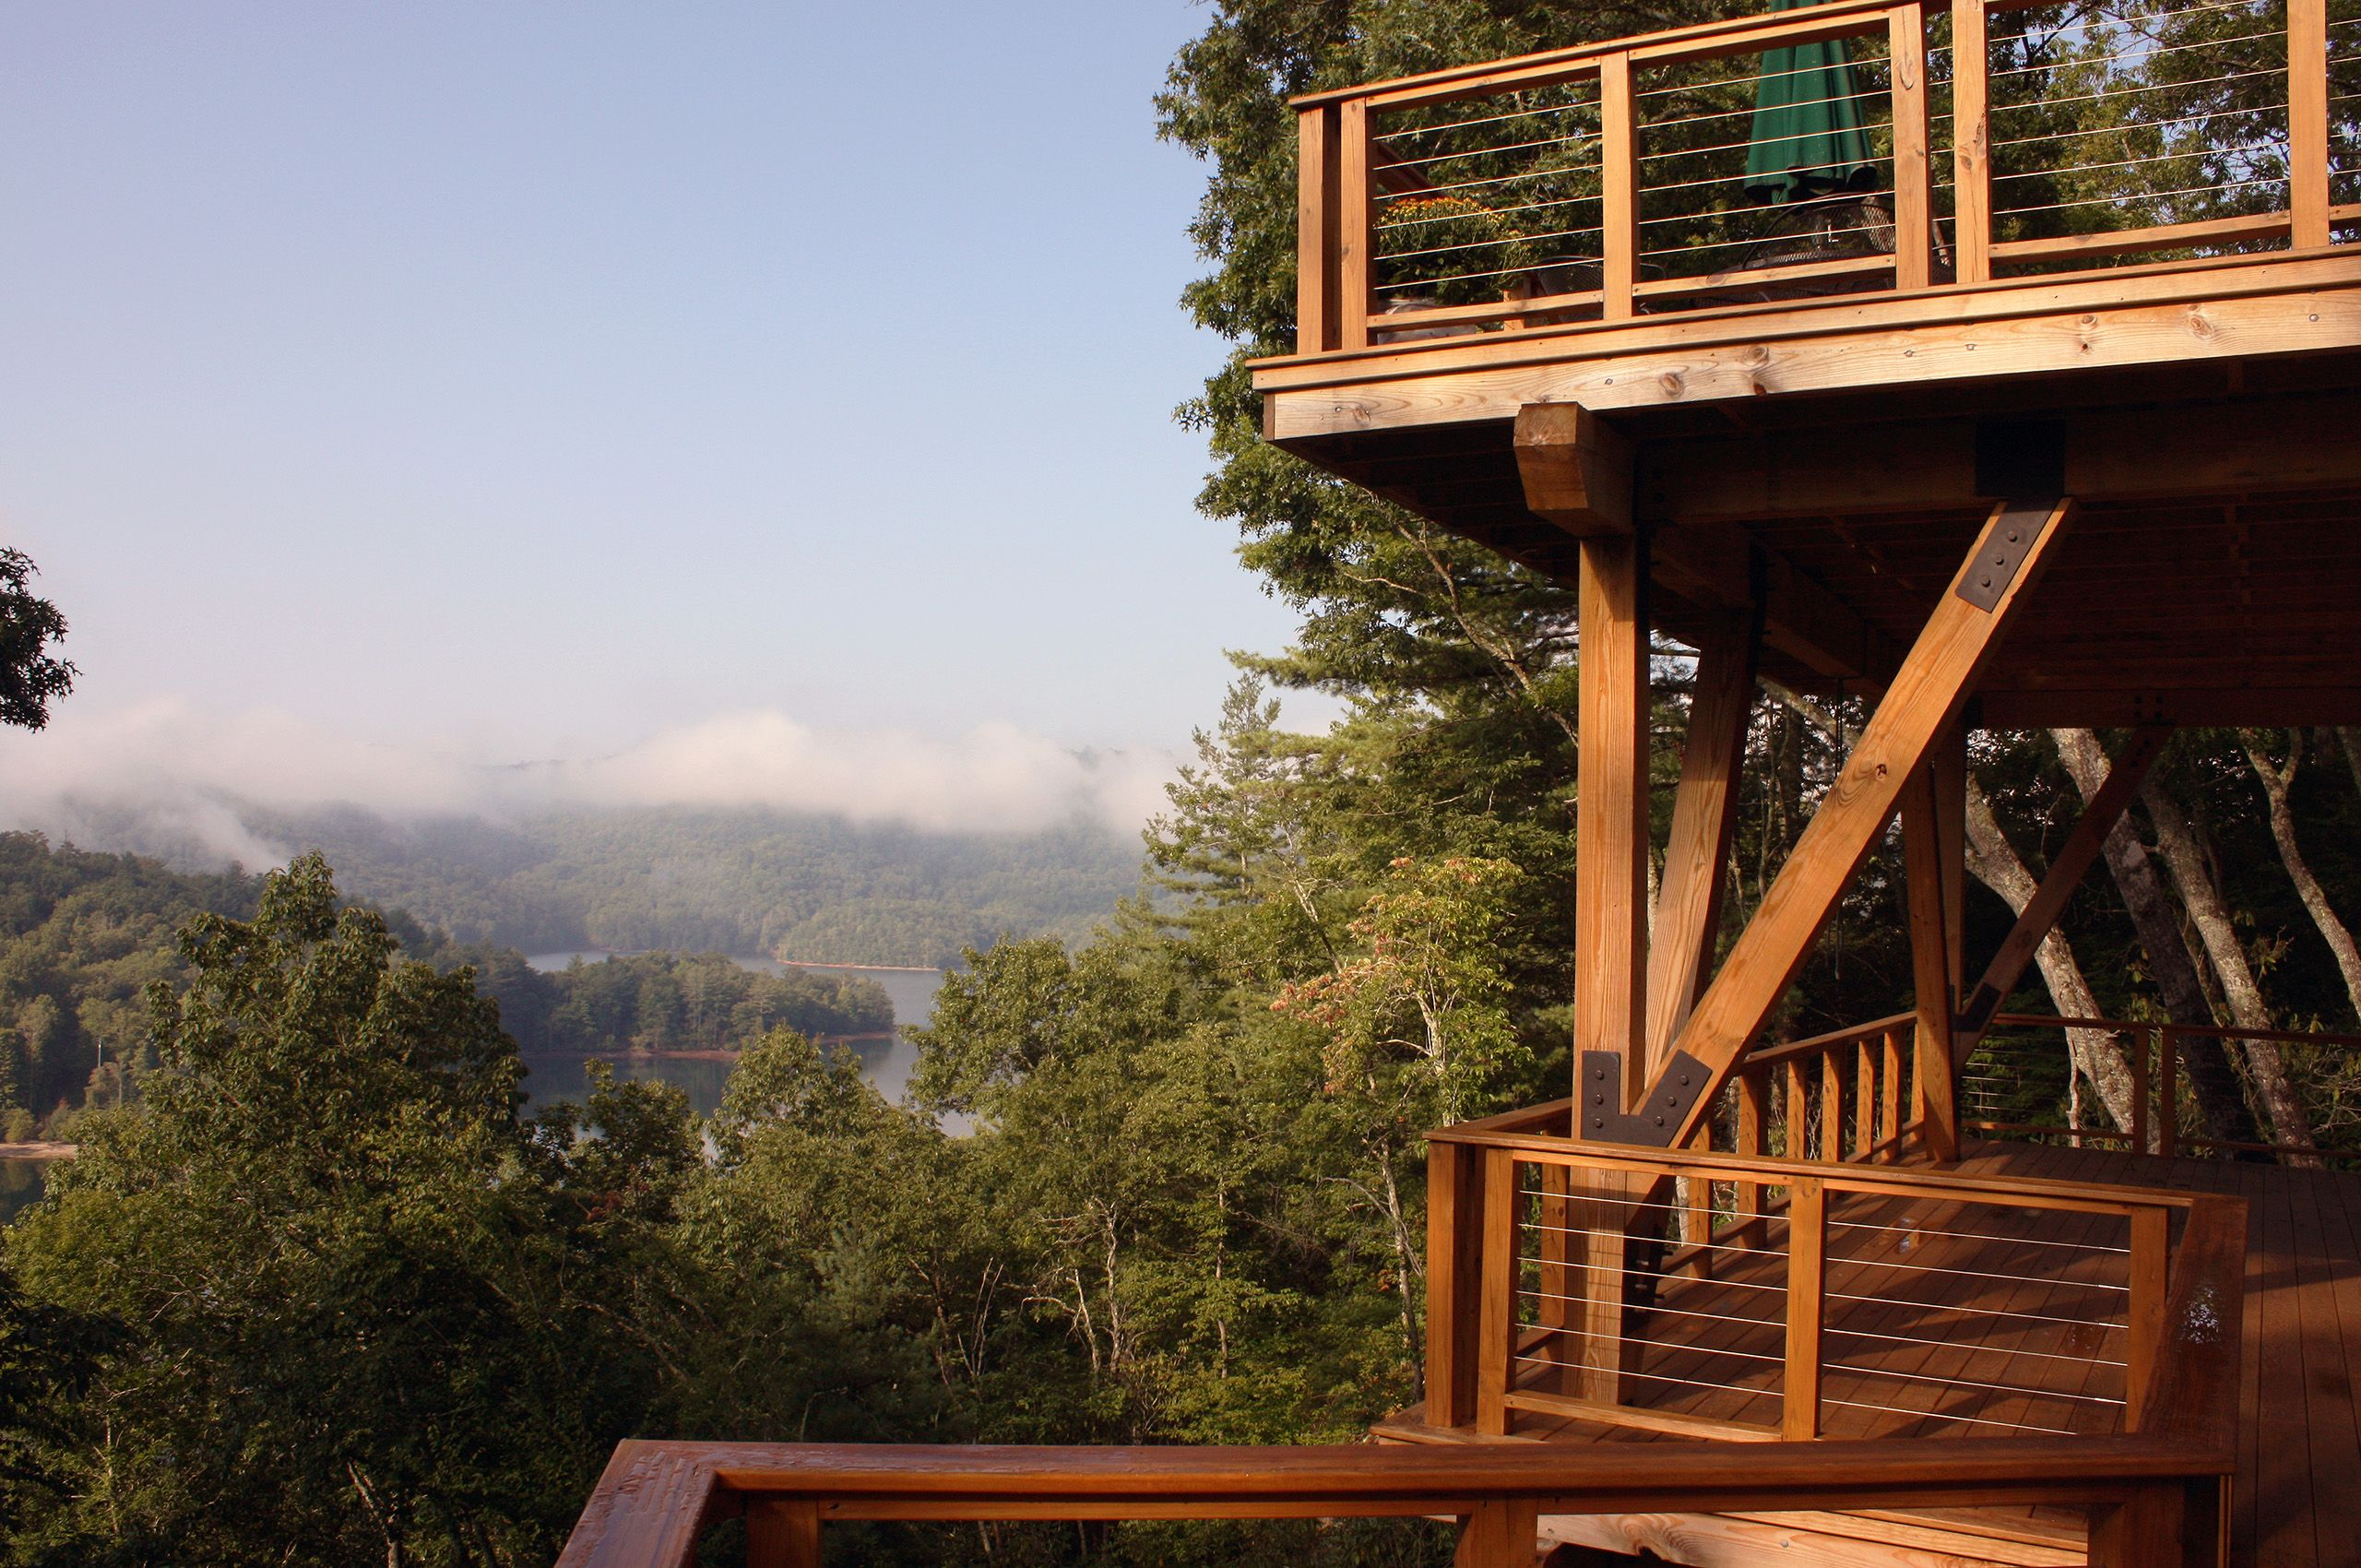 MountainRetreat-Lake Nantahala-NorthCarolina-LowerDeck.jpg